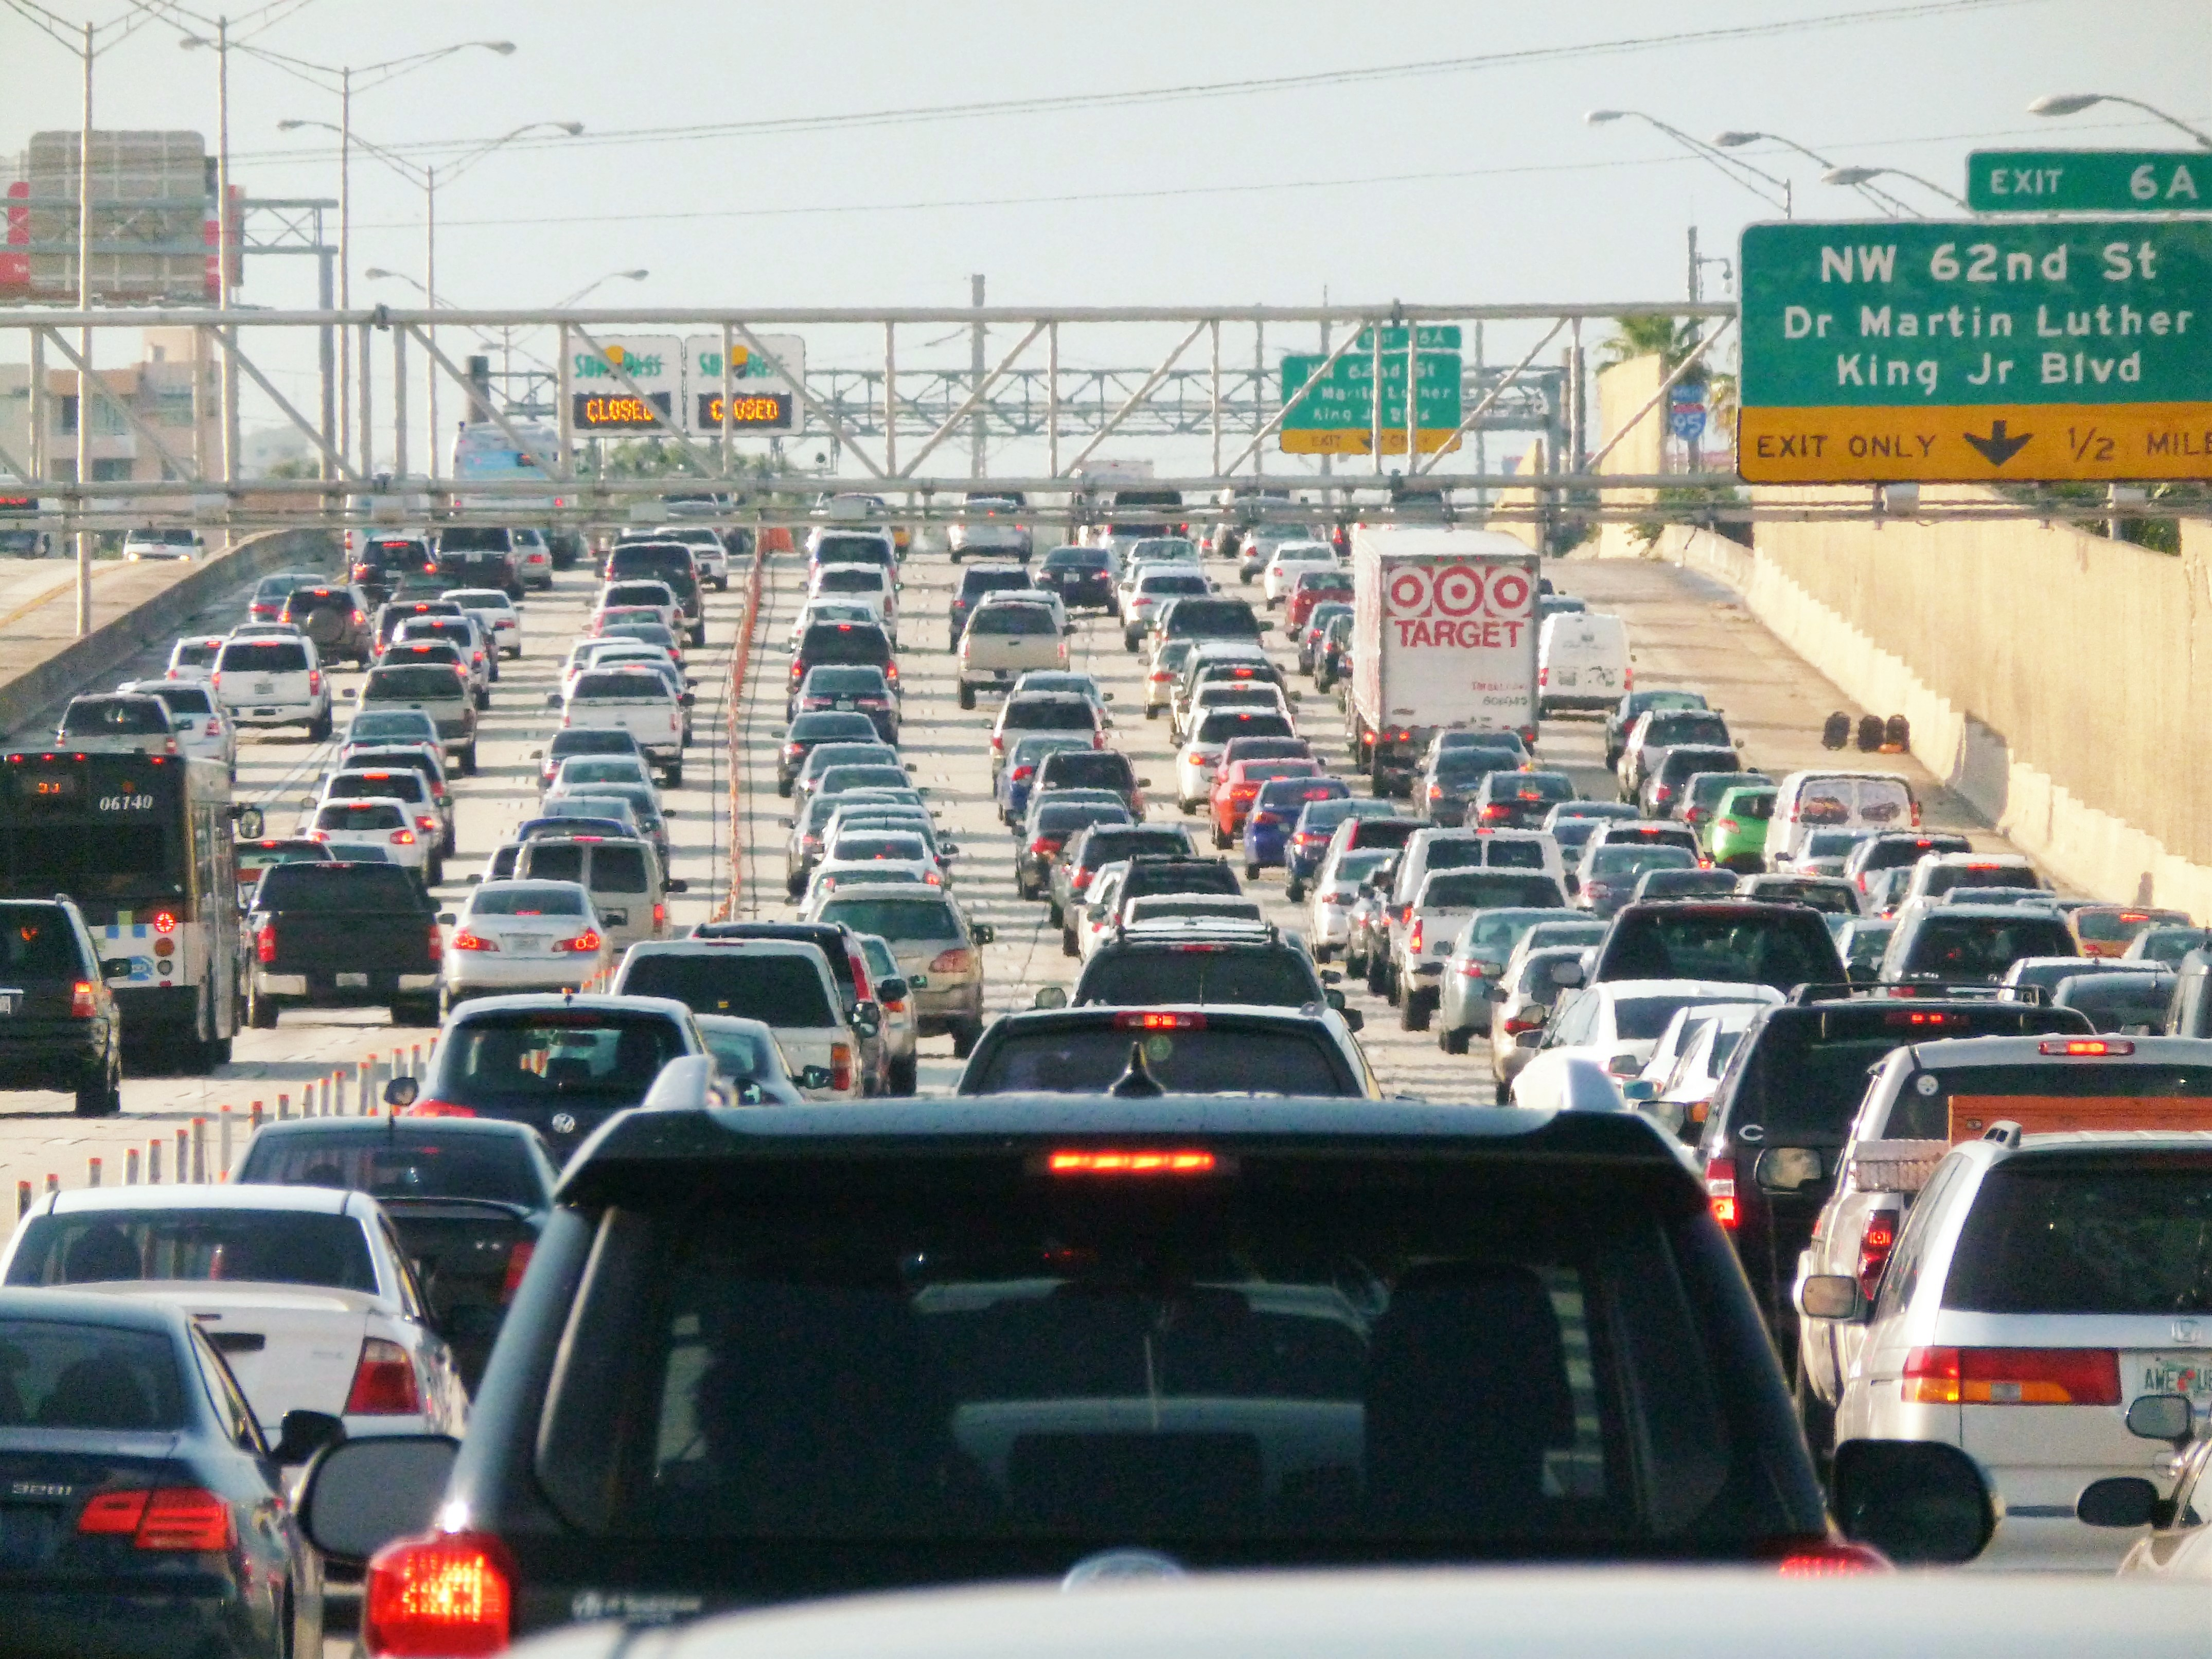 File:Miami traffic jam, I-95 North rush hour.jpg - Wikimedia Commons Traffic